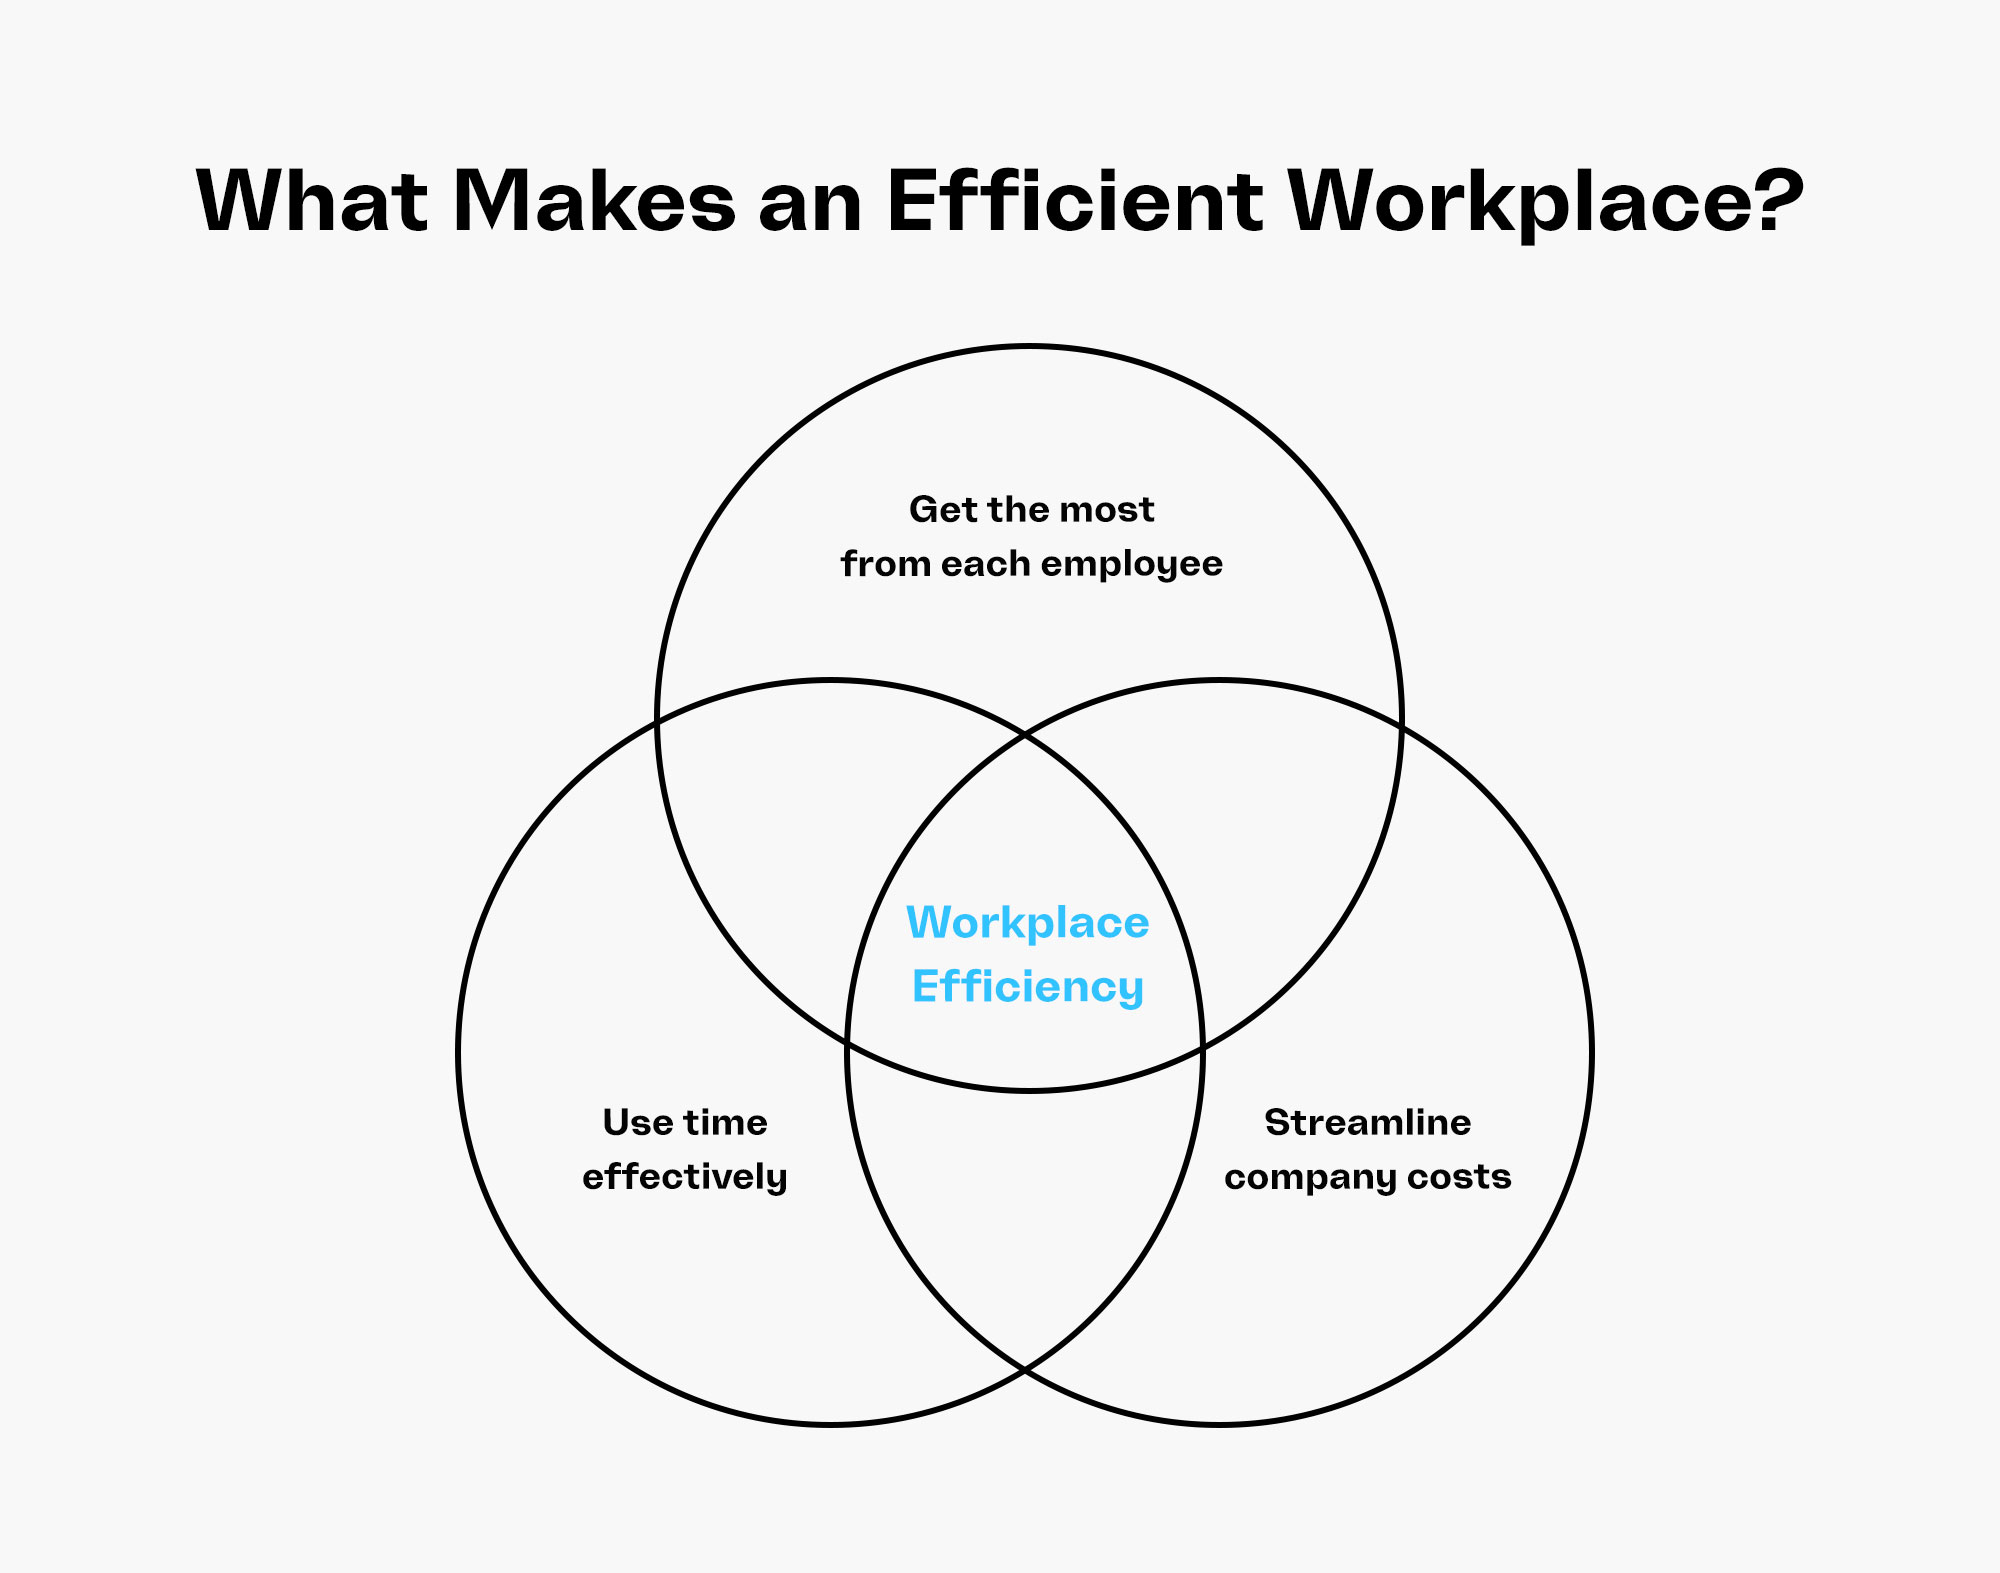 What Makes an Efficient Workplace